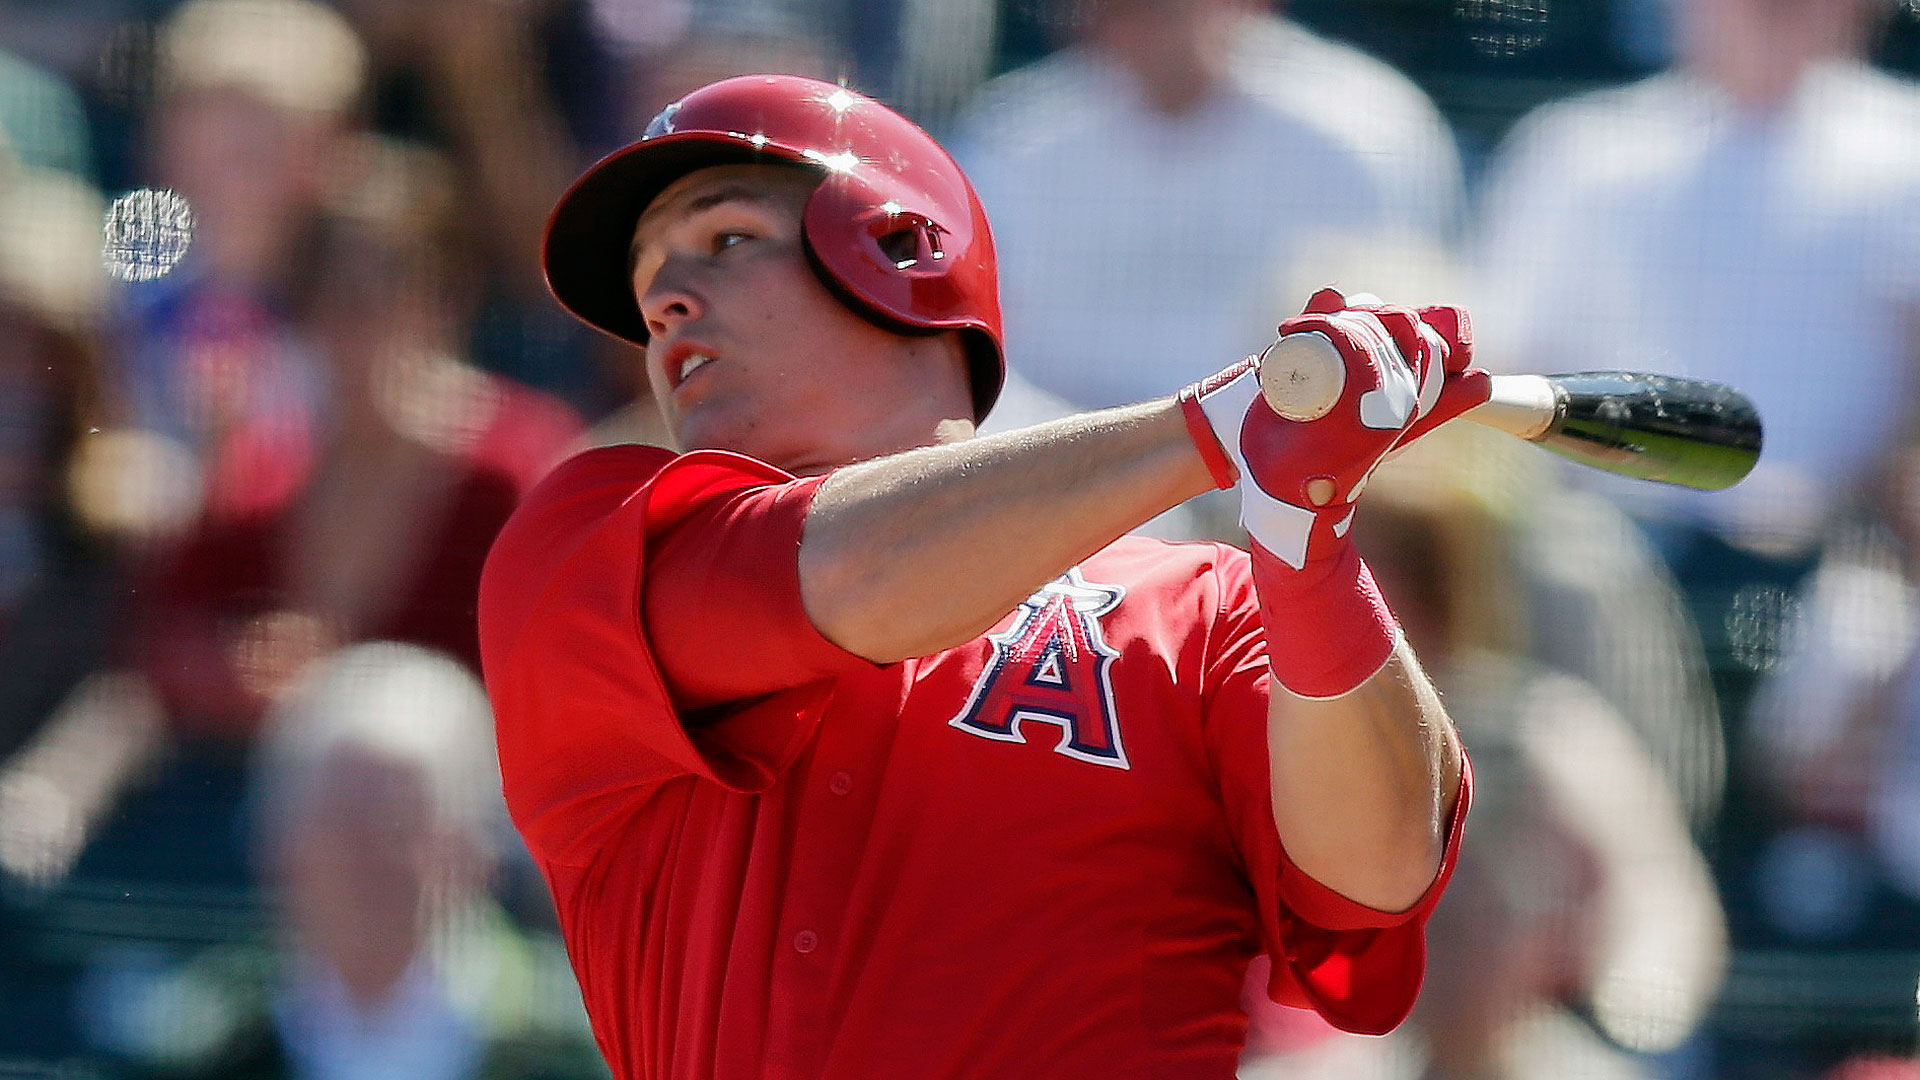 Mike Trout-111813-AP-FTR.jpg